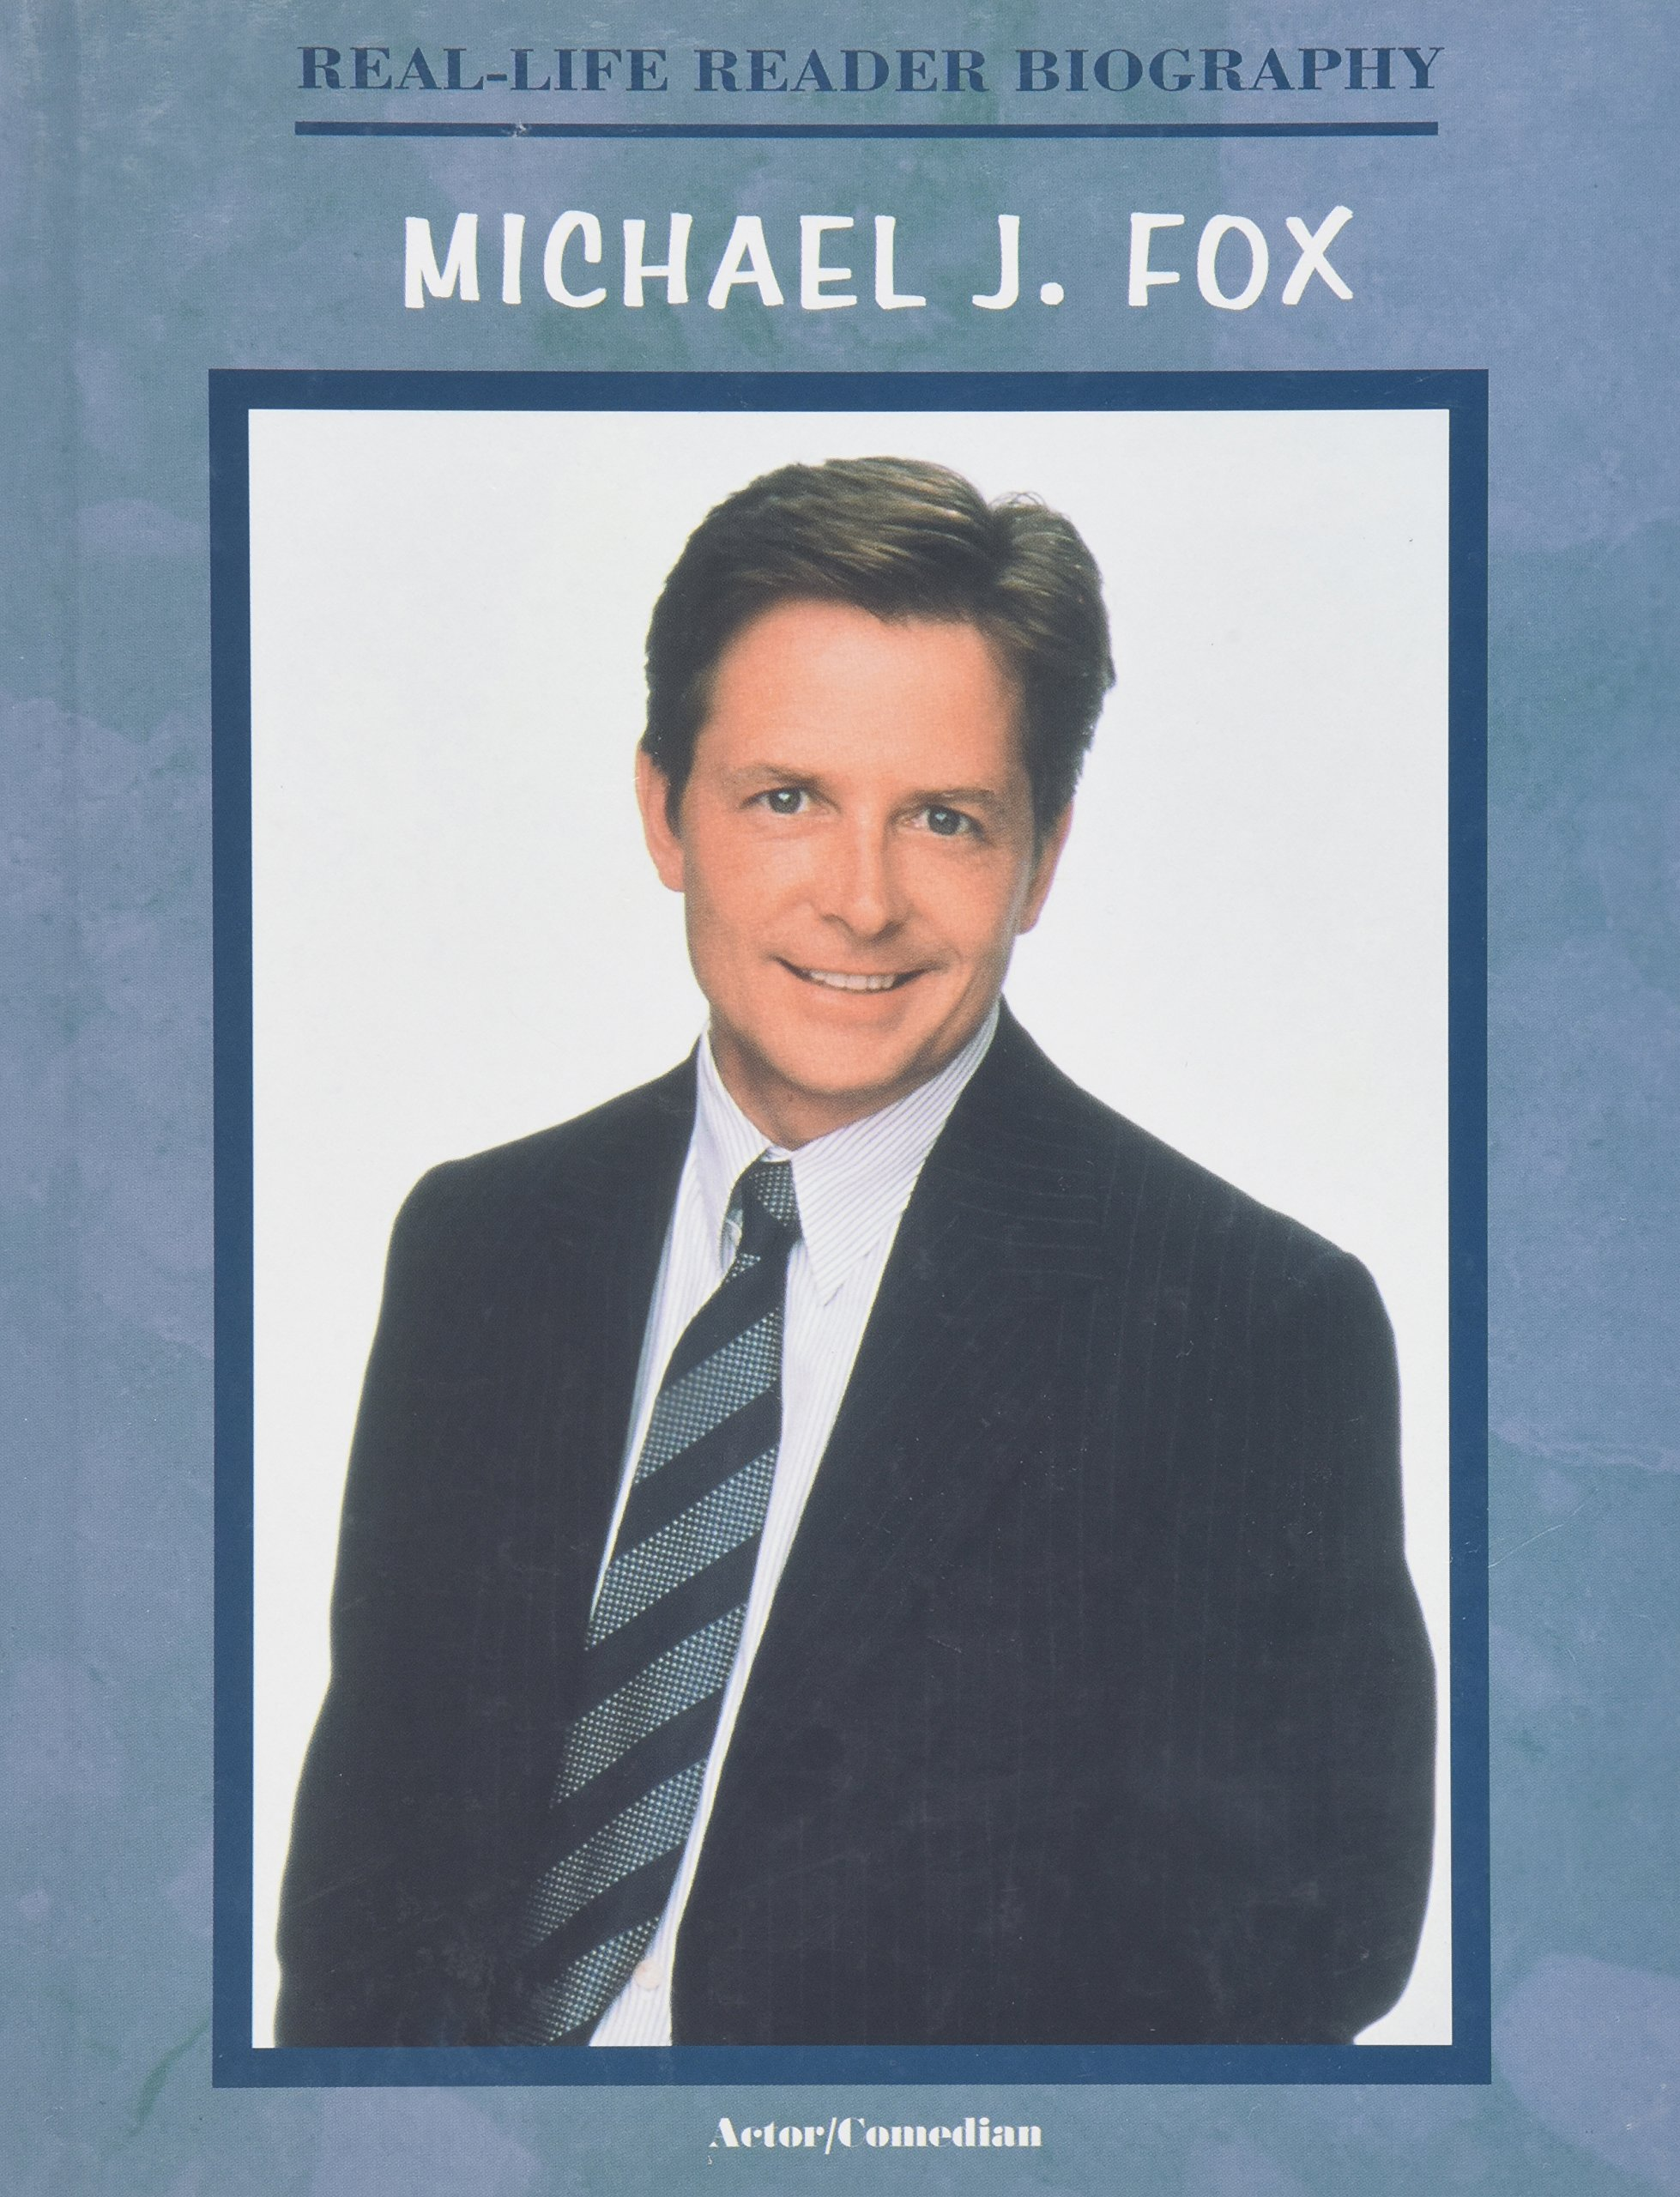 Michael J. Fox (Real-Life Reader Biography)